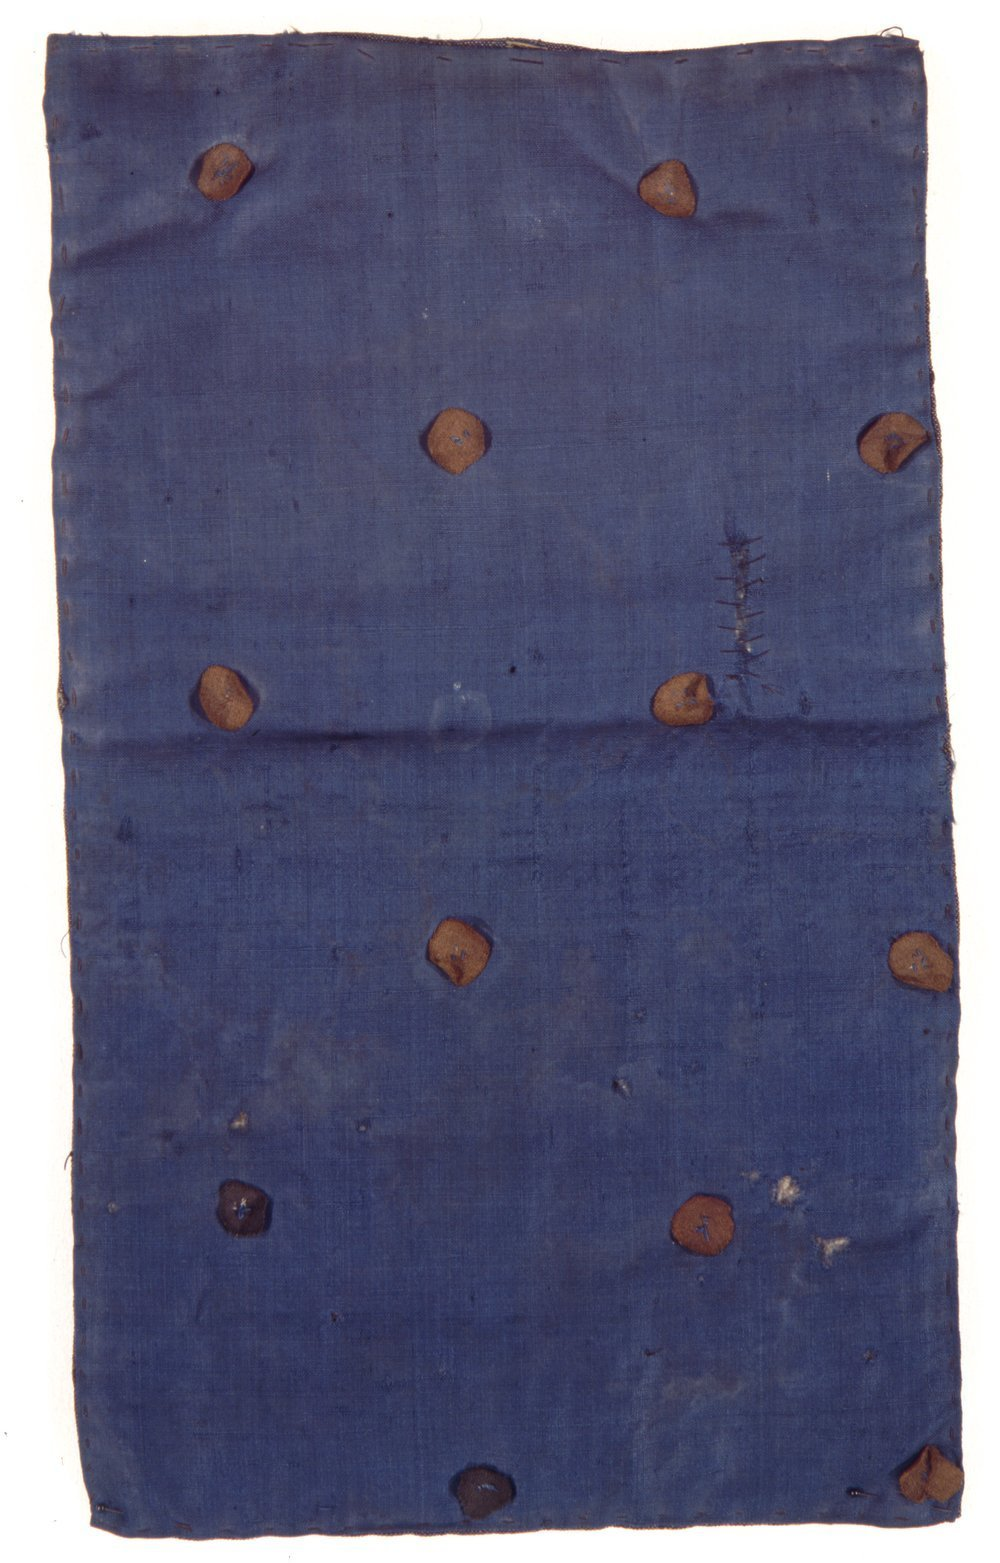 New England Emigrant Aid Company quilt fragment